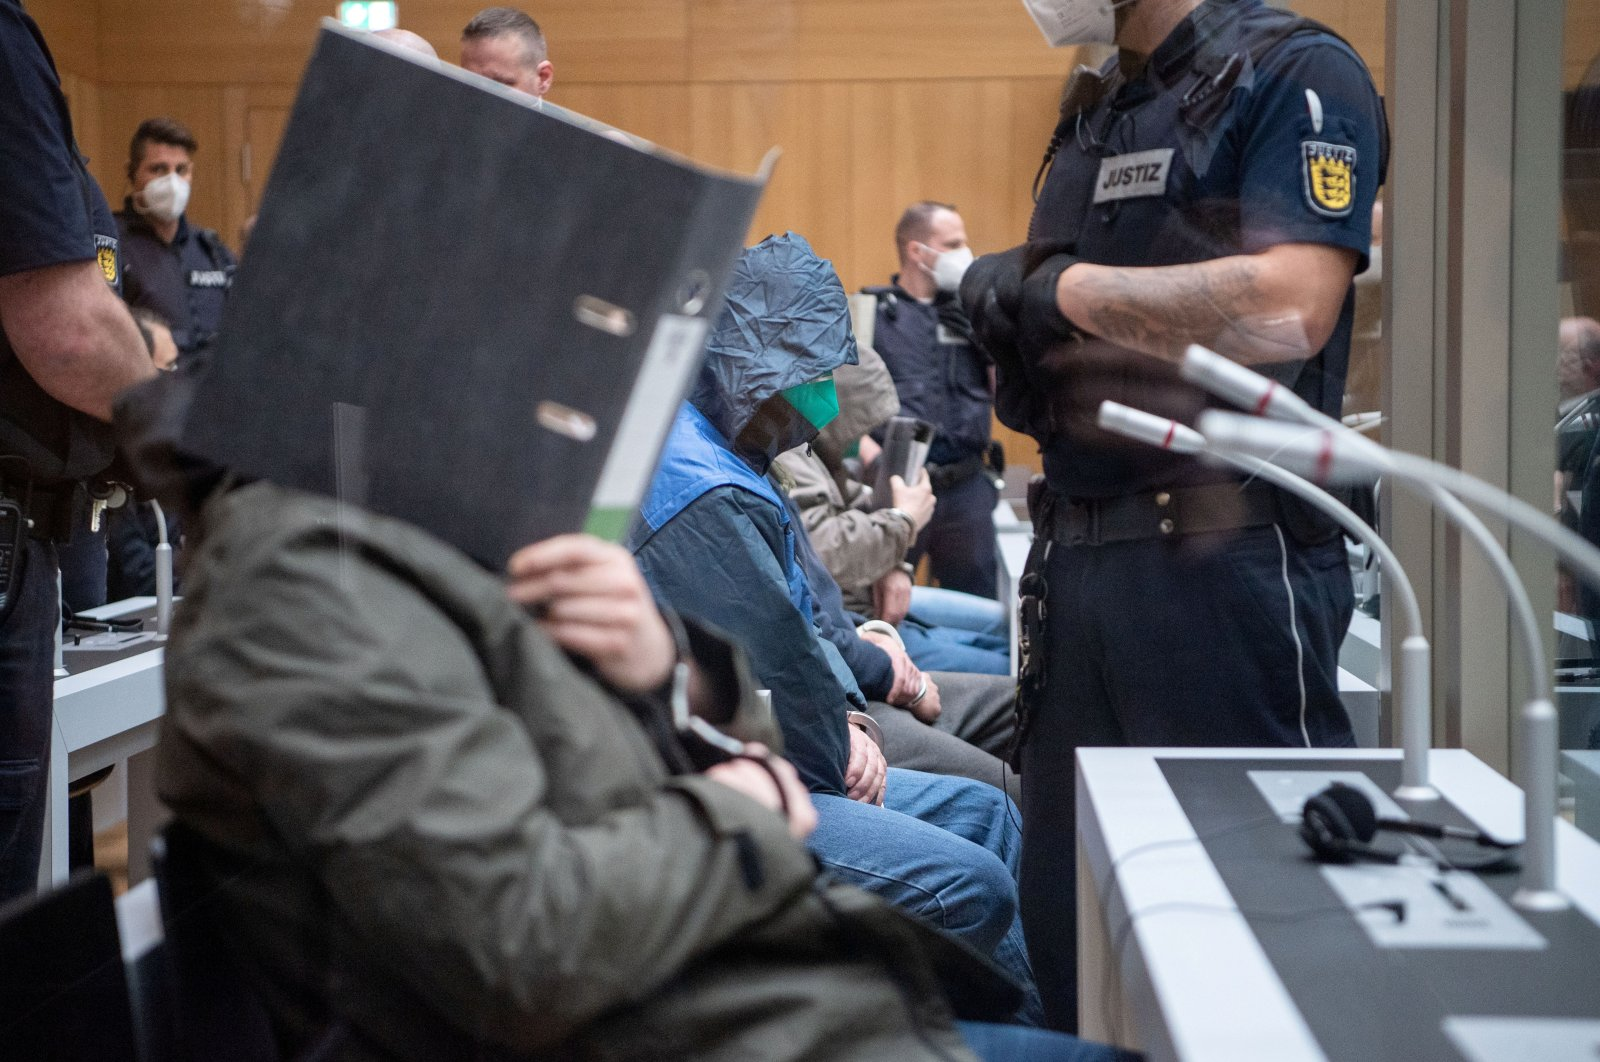 A defendant covers his face at the beginning of a trial against 11 Germans charged with belonging to a far-right organization, that prosecutors say aimed to attack mosques, at a higher regional court in Stuttgart, Germany, April 13, 2021. (Reuters Photo)